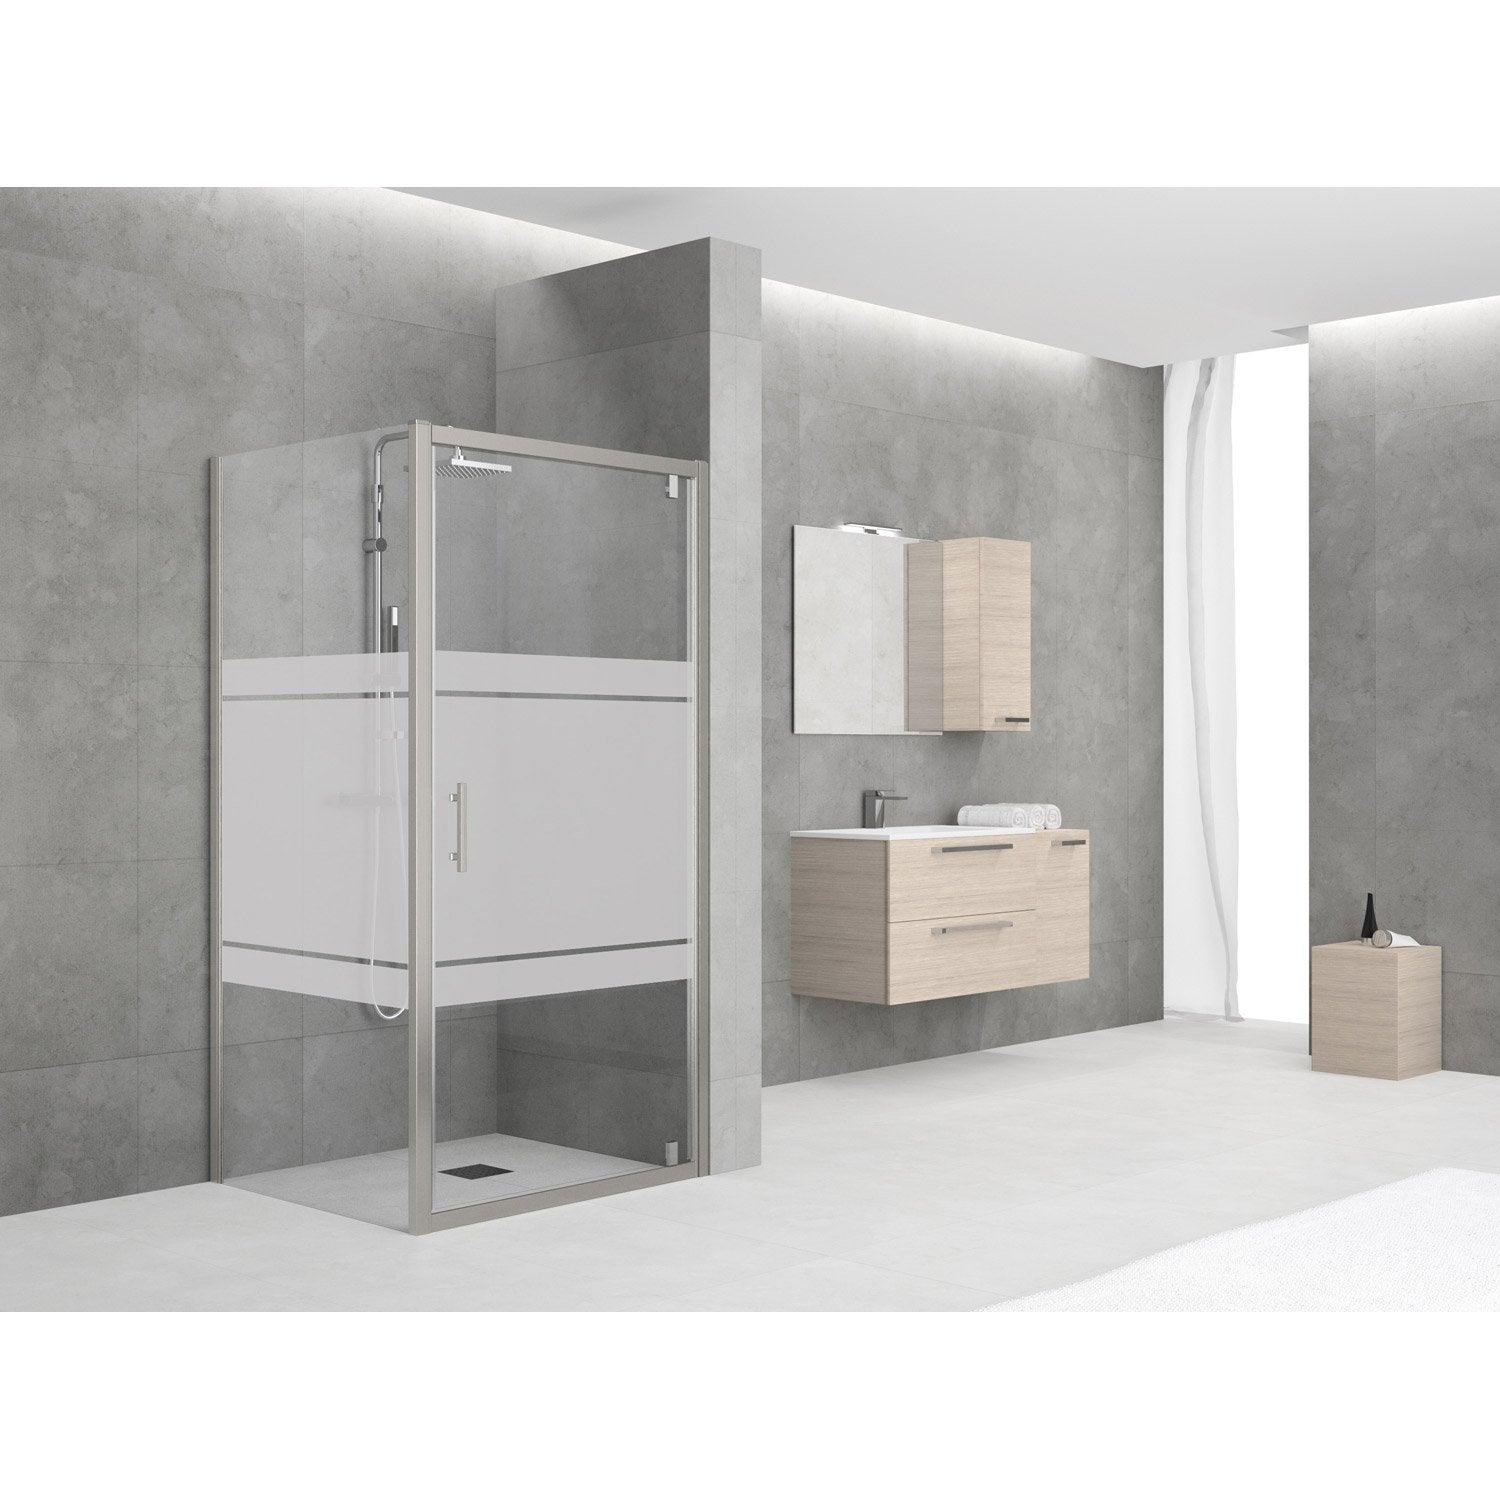 porte de douche pivotante 72 78 cm profil chrom elyt. Black Bedroom Furniture Sets. Home Design Ideas